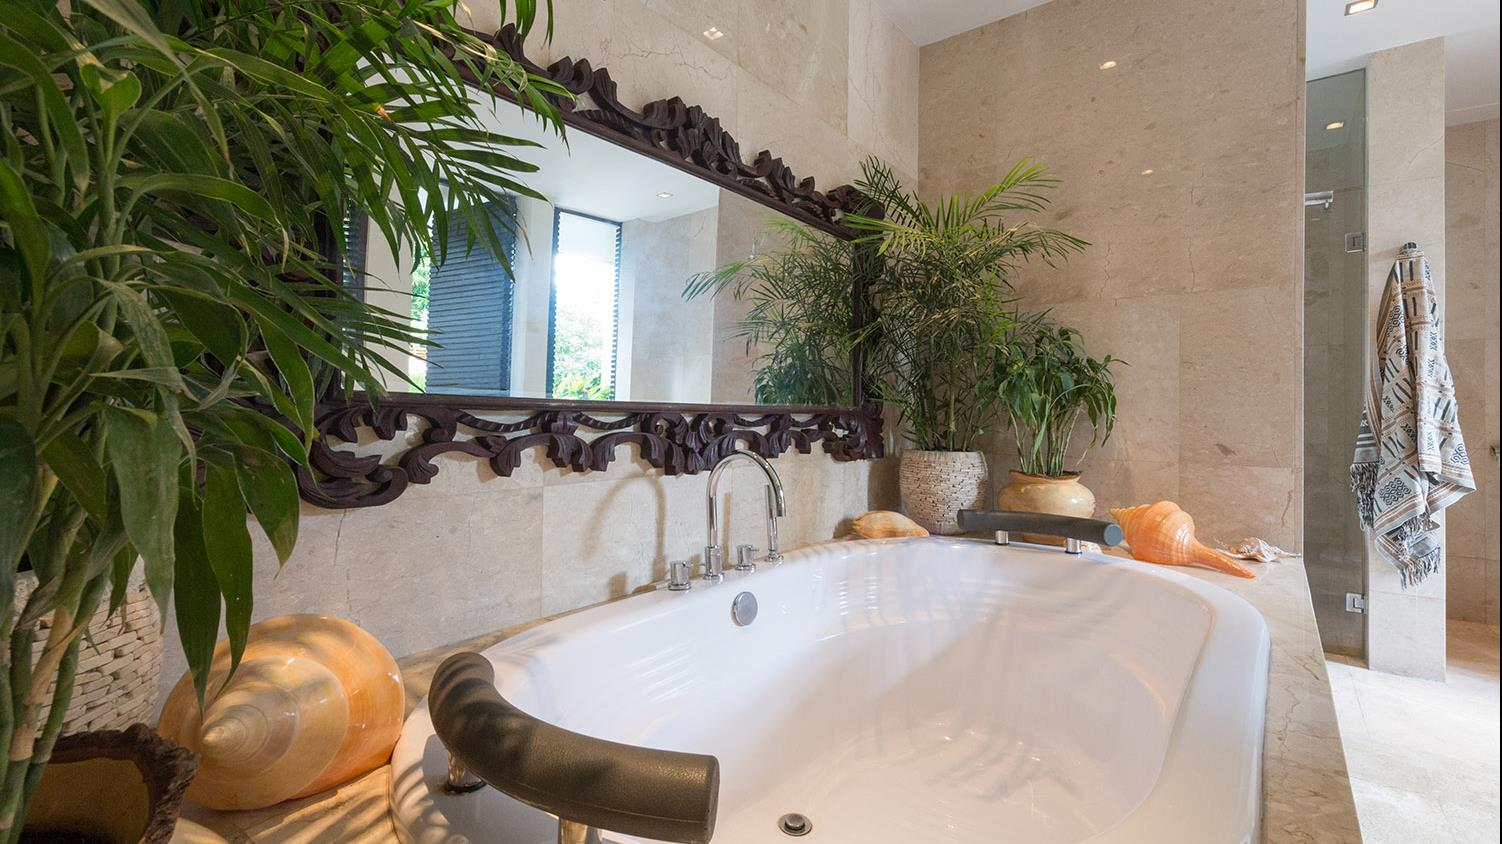 Bathroom with Bathtub and Mirror - Villa Eshara - Seminyak, Bali